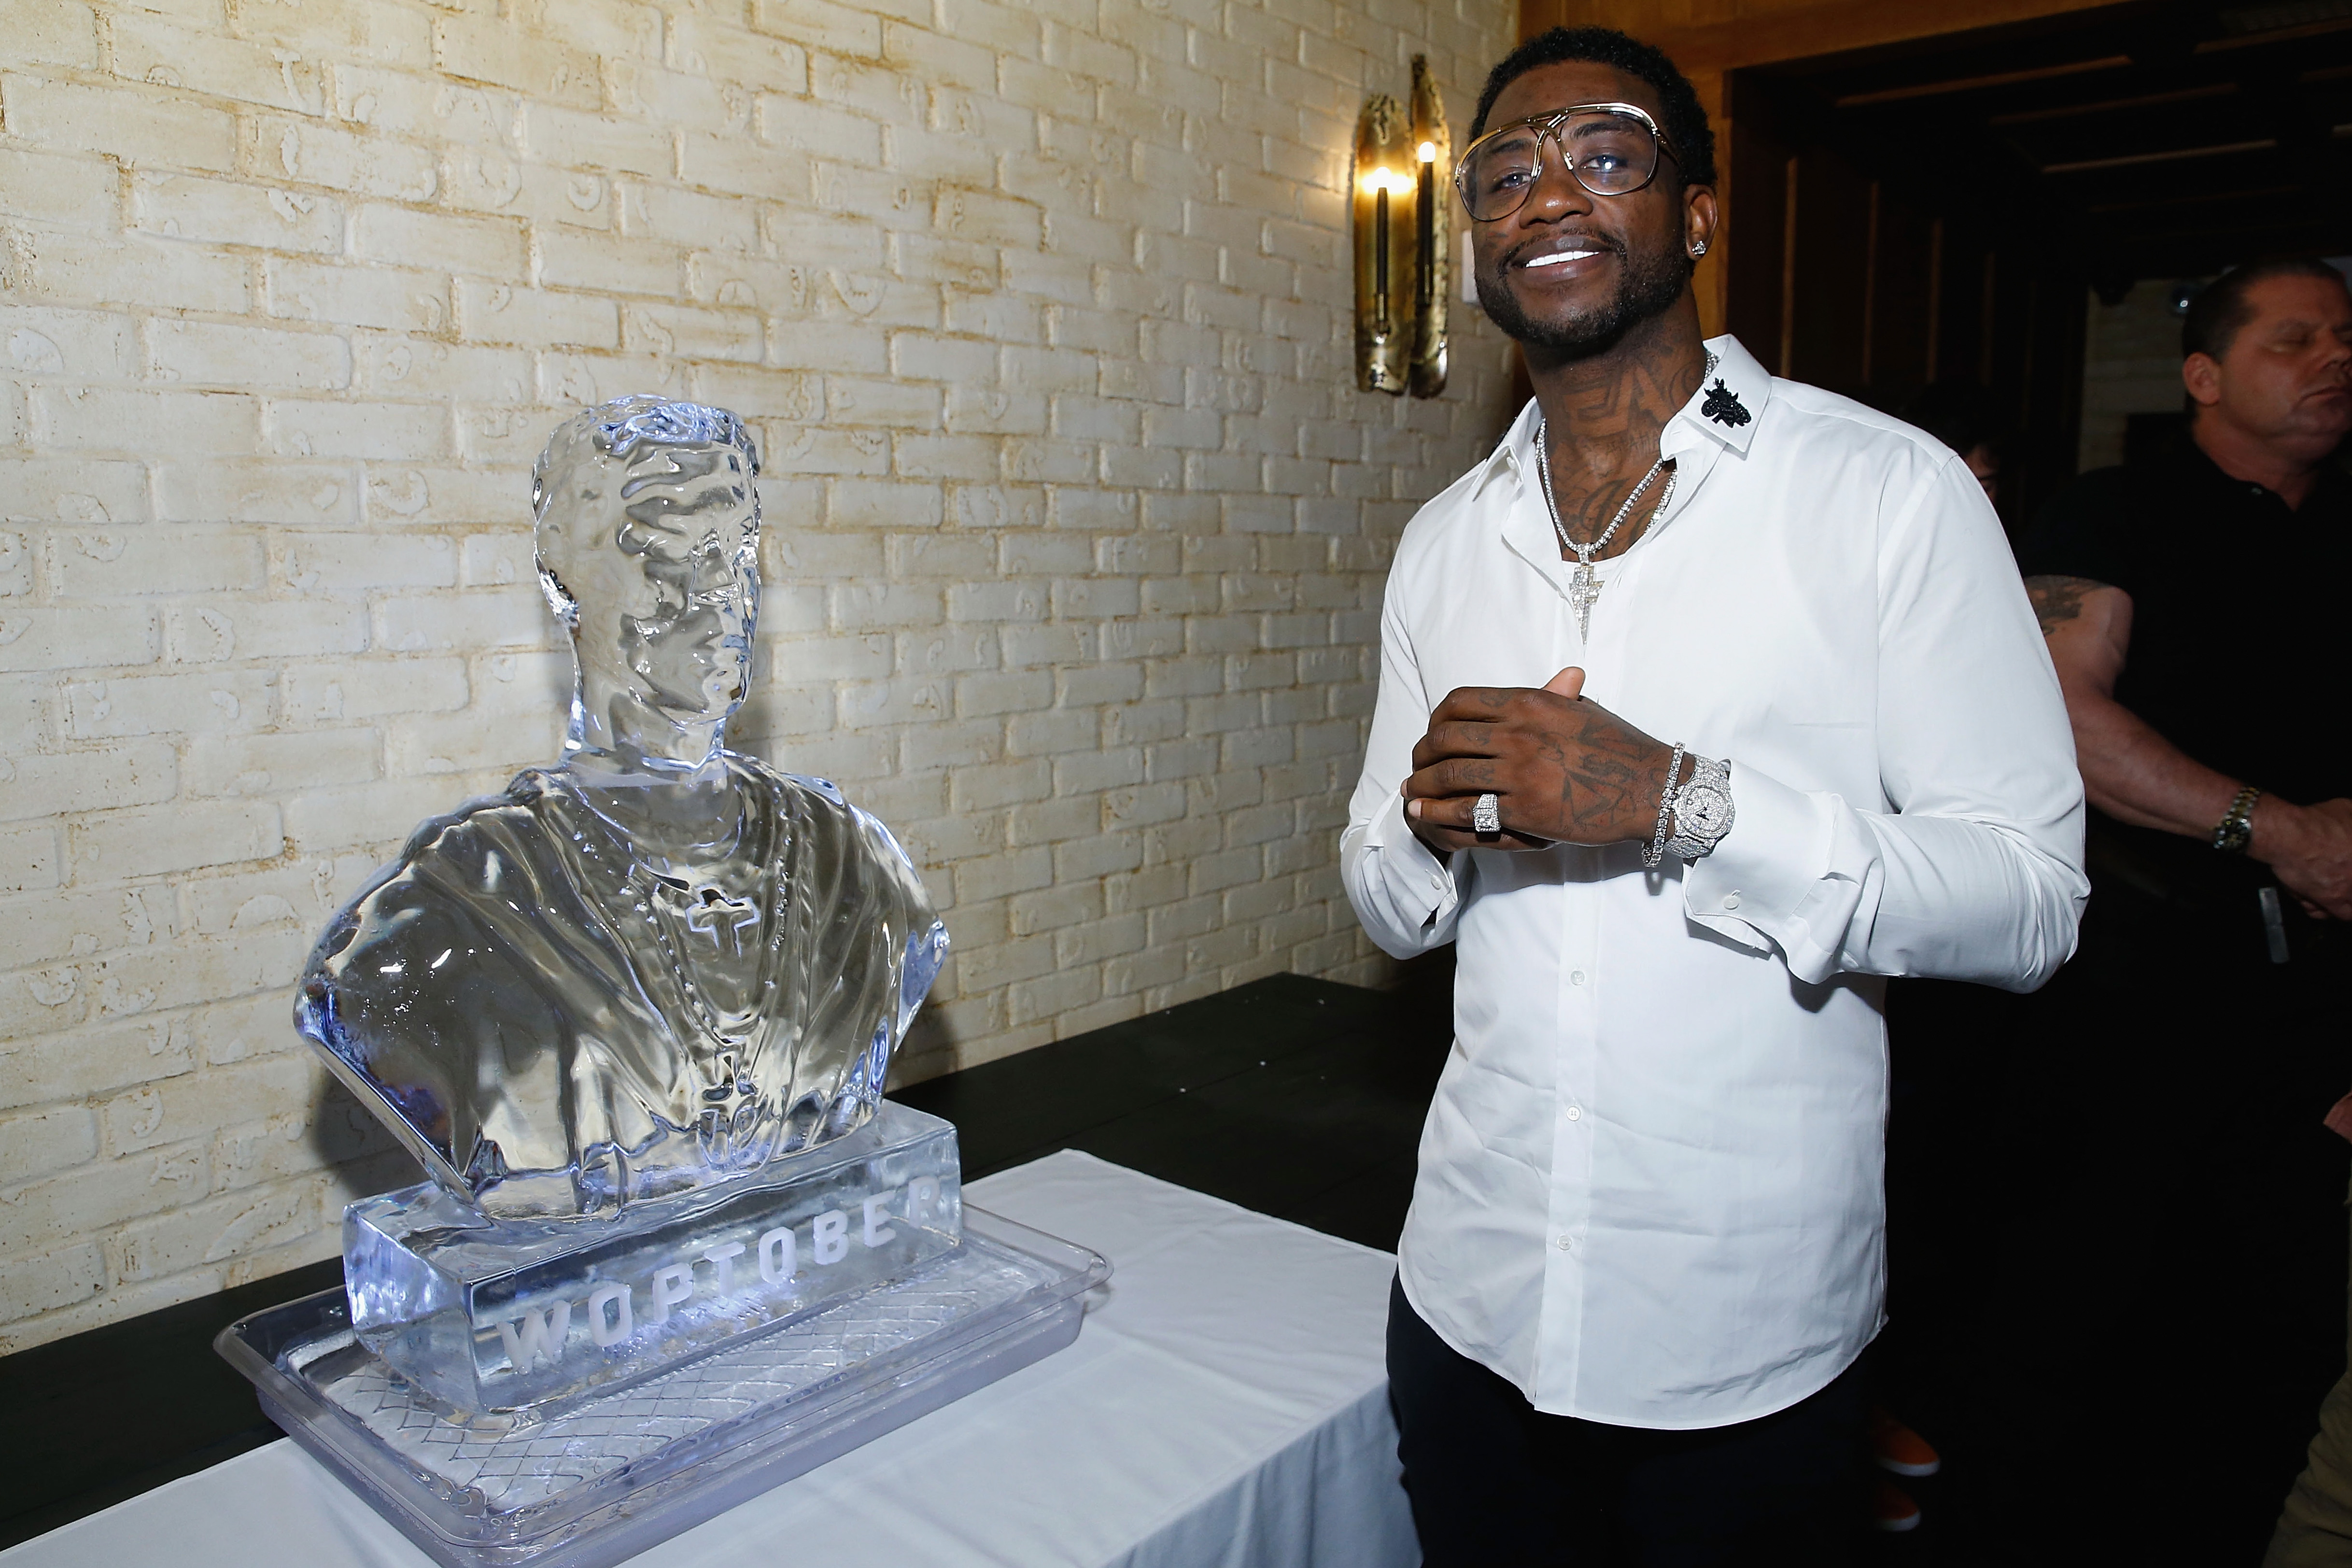 Gucci Mane at a private dinner in New York City